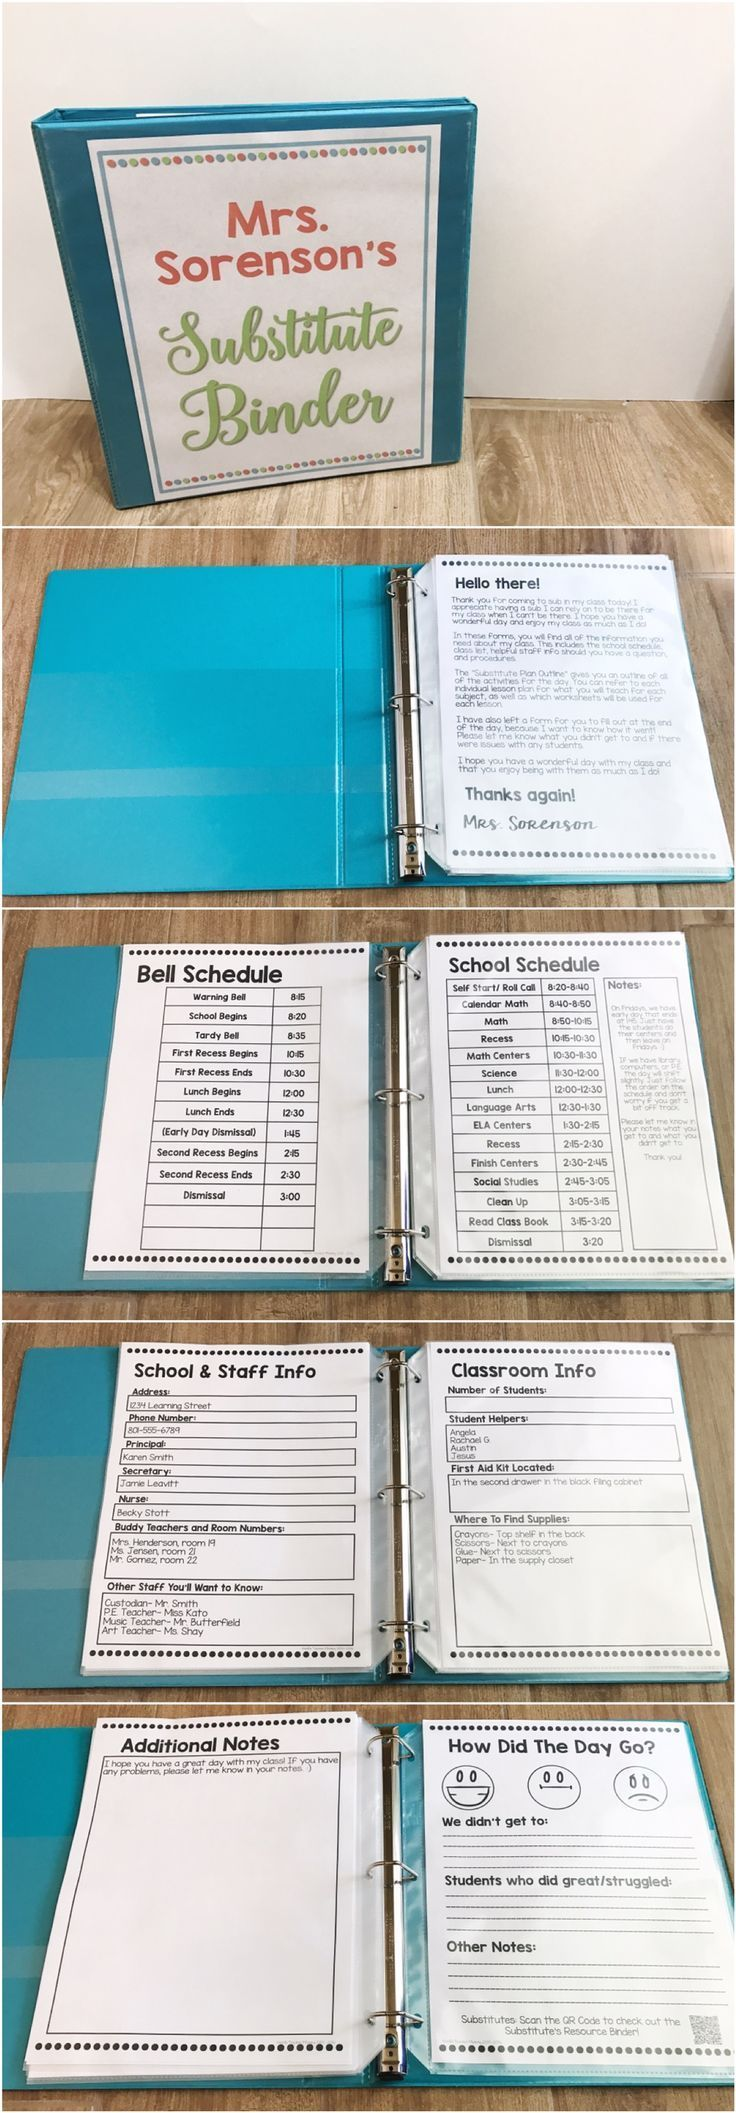 Getting your sub binder ready is a breeze! This editable substitute binder includes 20 forms that you can type right into. The adorable cover (add your own name!), note to the sub, bell schedule, regular, alternate, and specials schedules are included. Forms included for school & staff info, classroom info, arrival & dismissal, classroom management, emergency procedures & more! An end of the day form is included. Perfect for short and long term subs! **Also part of my Ready To Go Sub